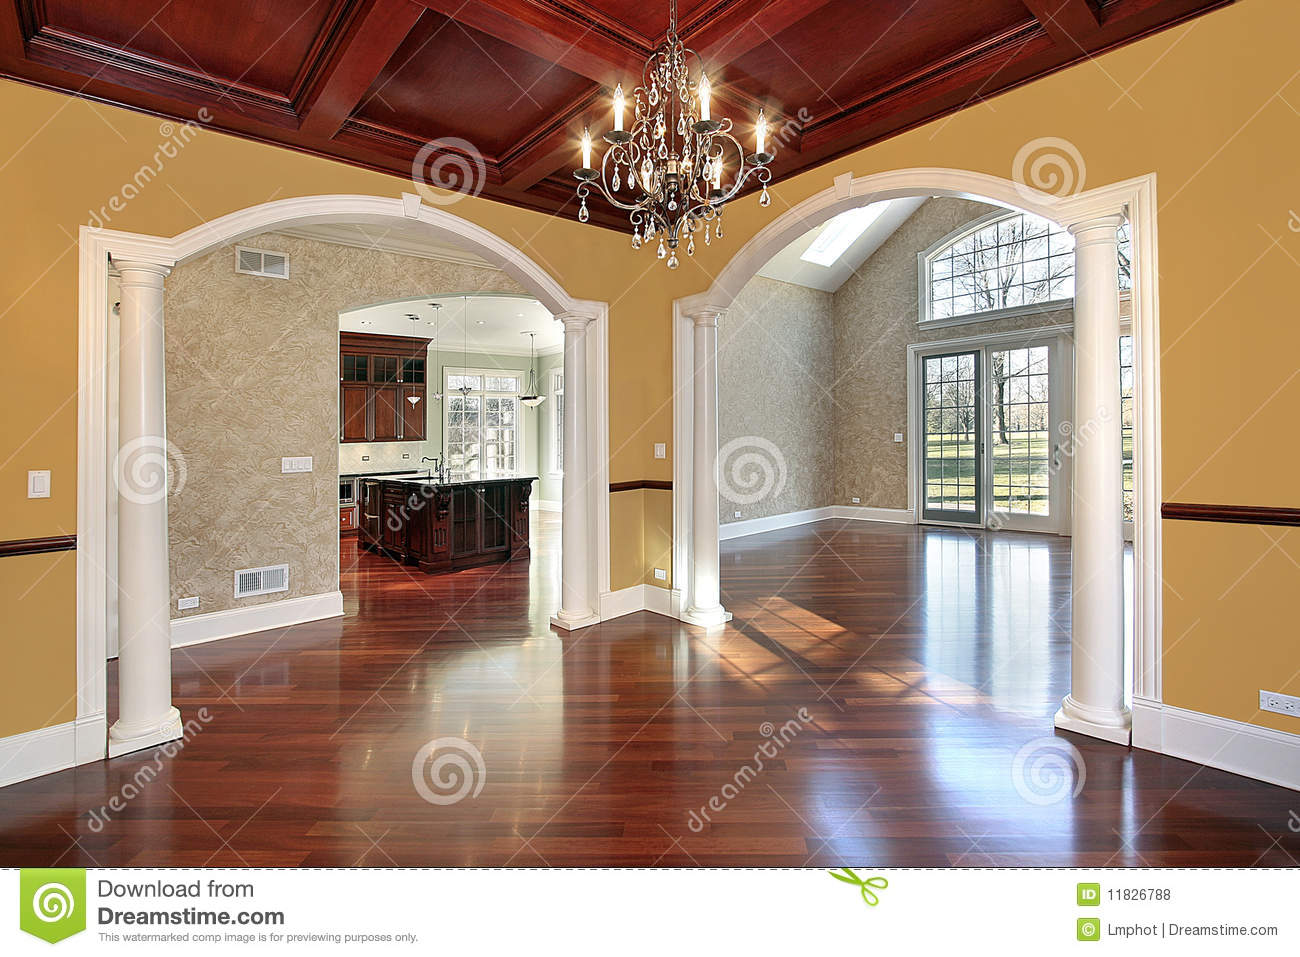 Dining Room With White Columns Royalty Free Stock Photos